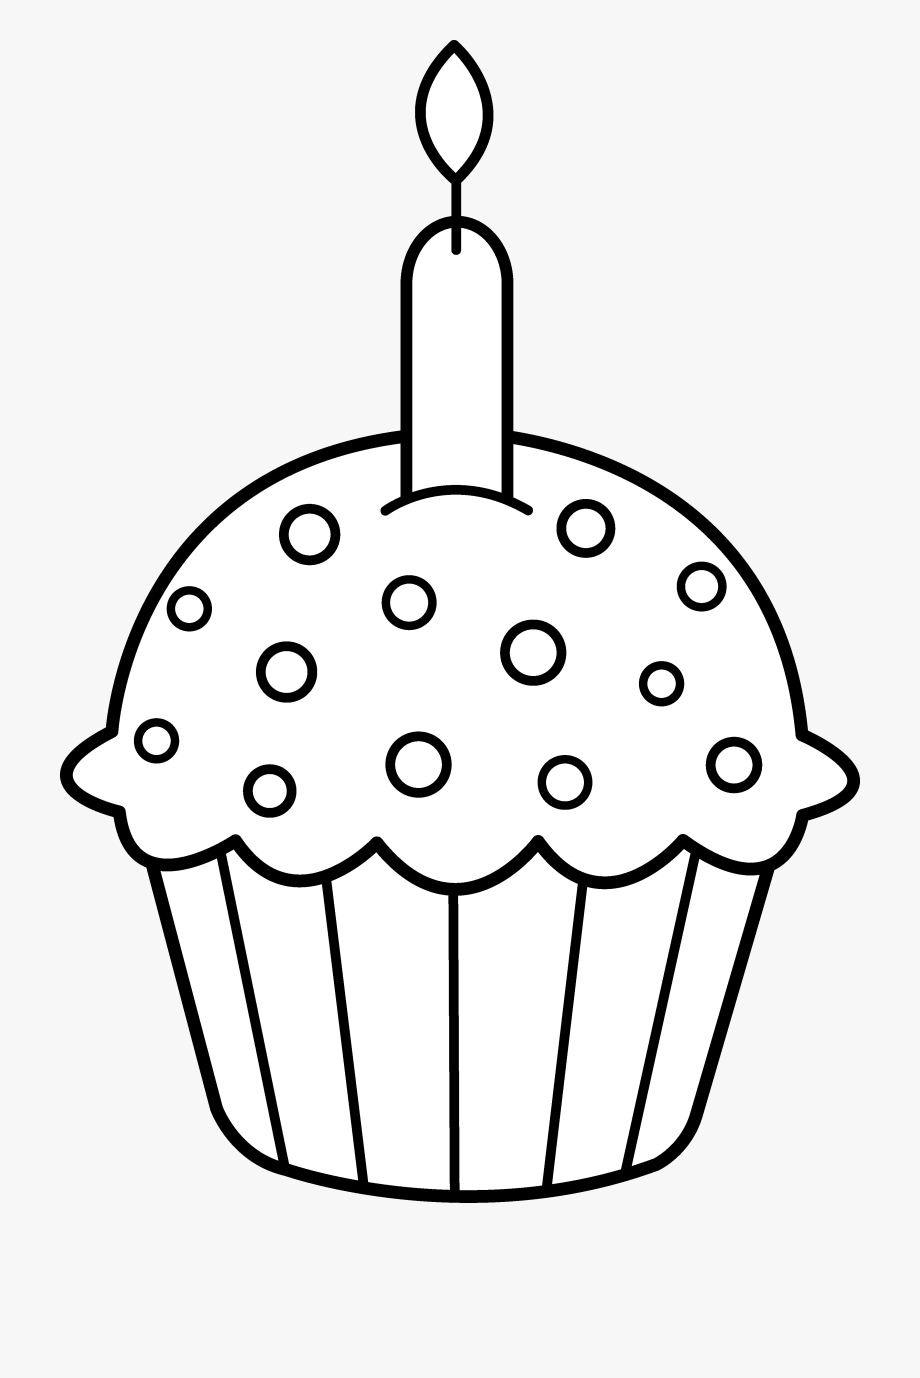 Cupcake 2 candles clipart black and white image black and white stock Birthday Candles Clipart Black And White - Birthday Cupcake ... image black and white stock